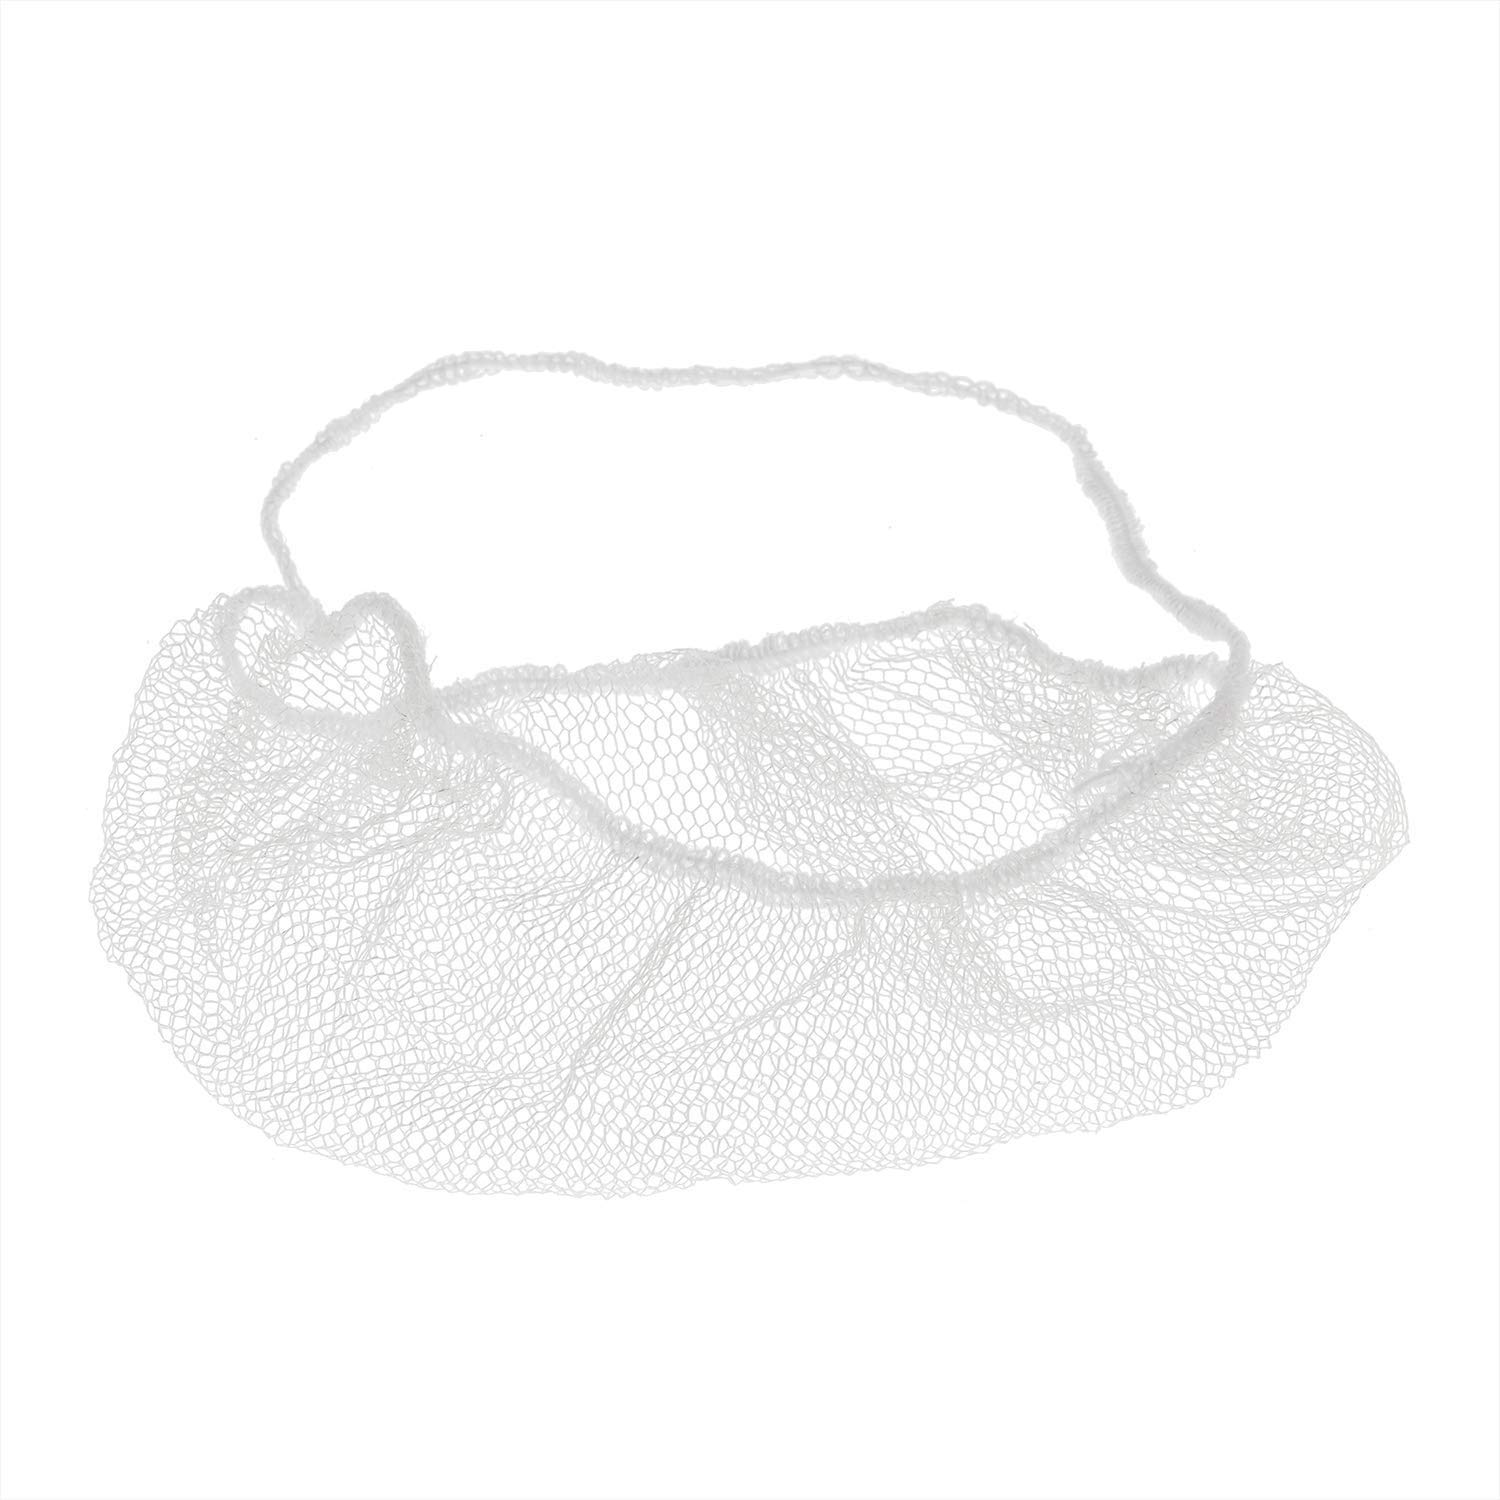 ABC 100 Pack of Disposable Soft Nylon Beard Covers 18''. White beard guards. Premium Quality beard net protectors. Honeycomb beard nets. Facial hair covering. Breathable & Lightweight. Wholesale. by ABC Pack & Supply